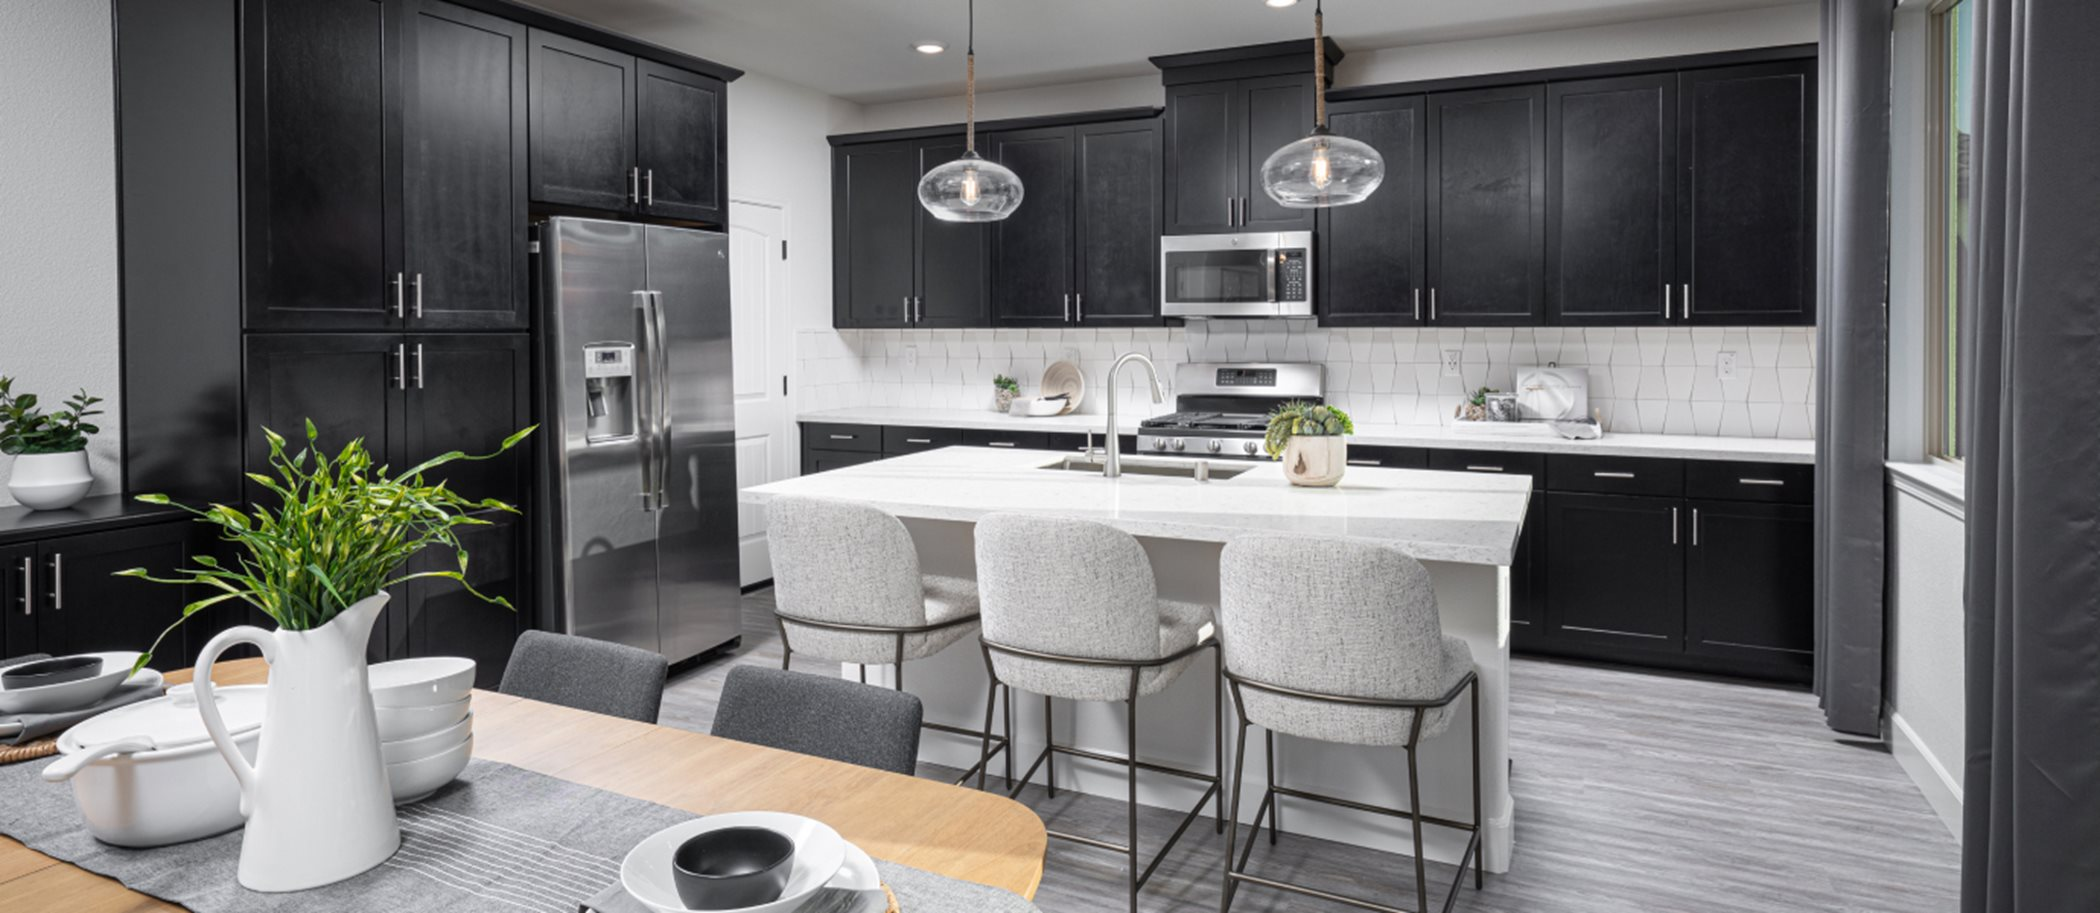 Essentia at Sterling Meadows Residence 1945 Kitchen